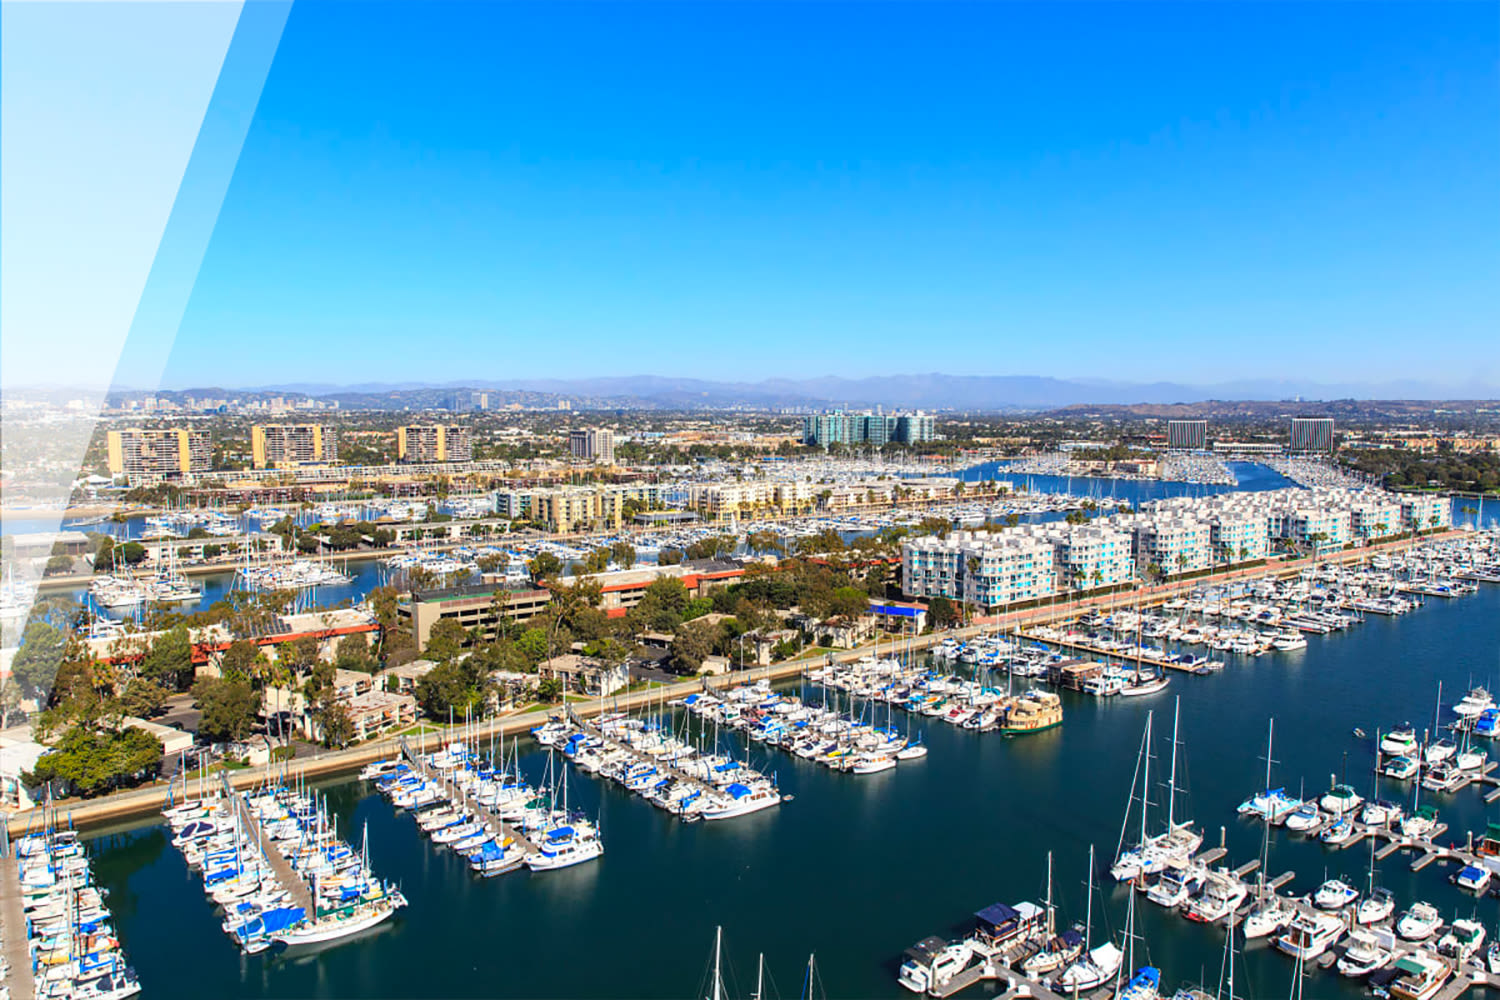 Aerial view of yachts in slips at our Esprit property at E&S Ring Management Corporation in Los Angeles, California